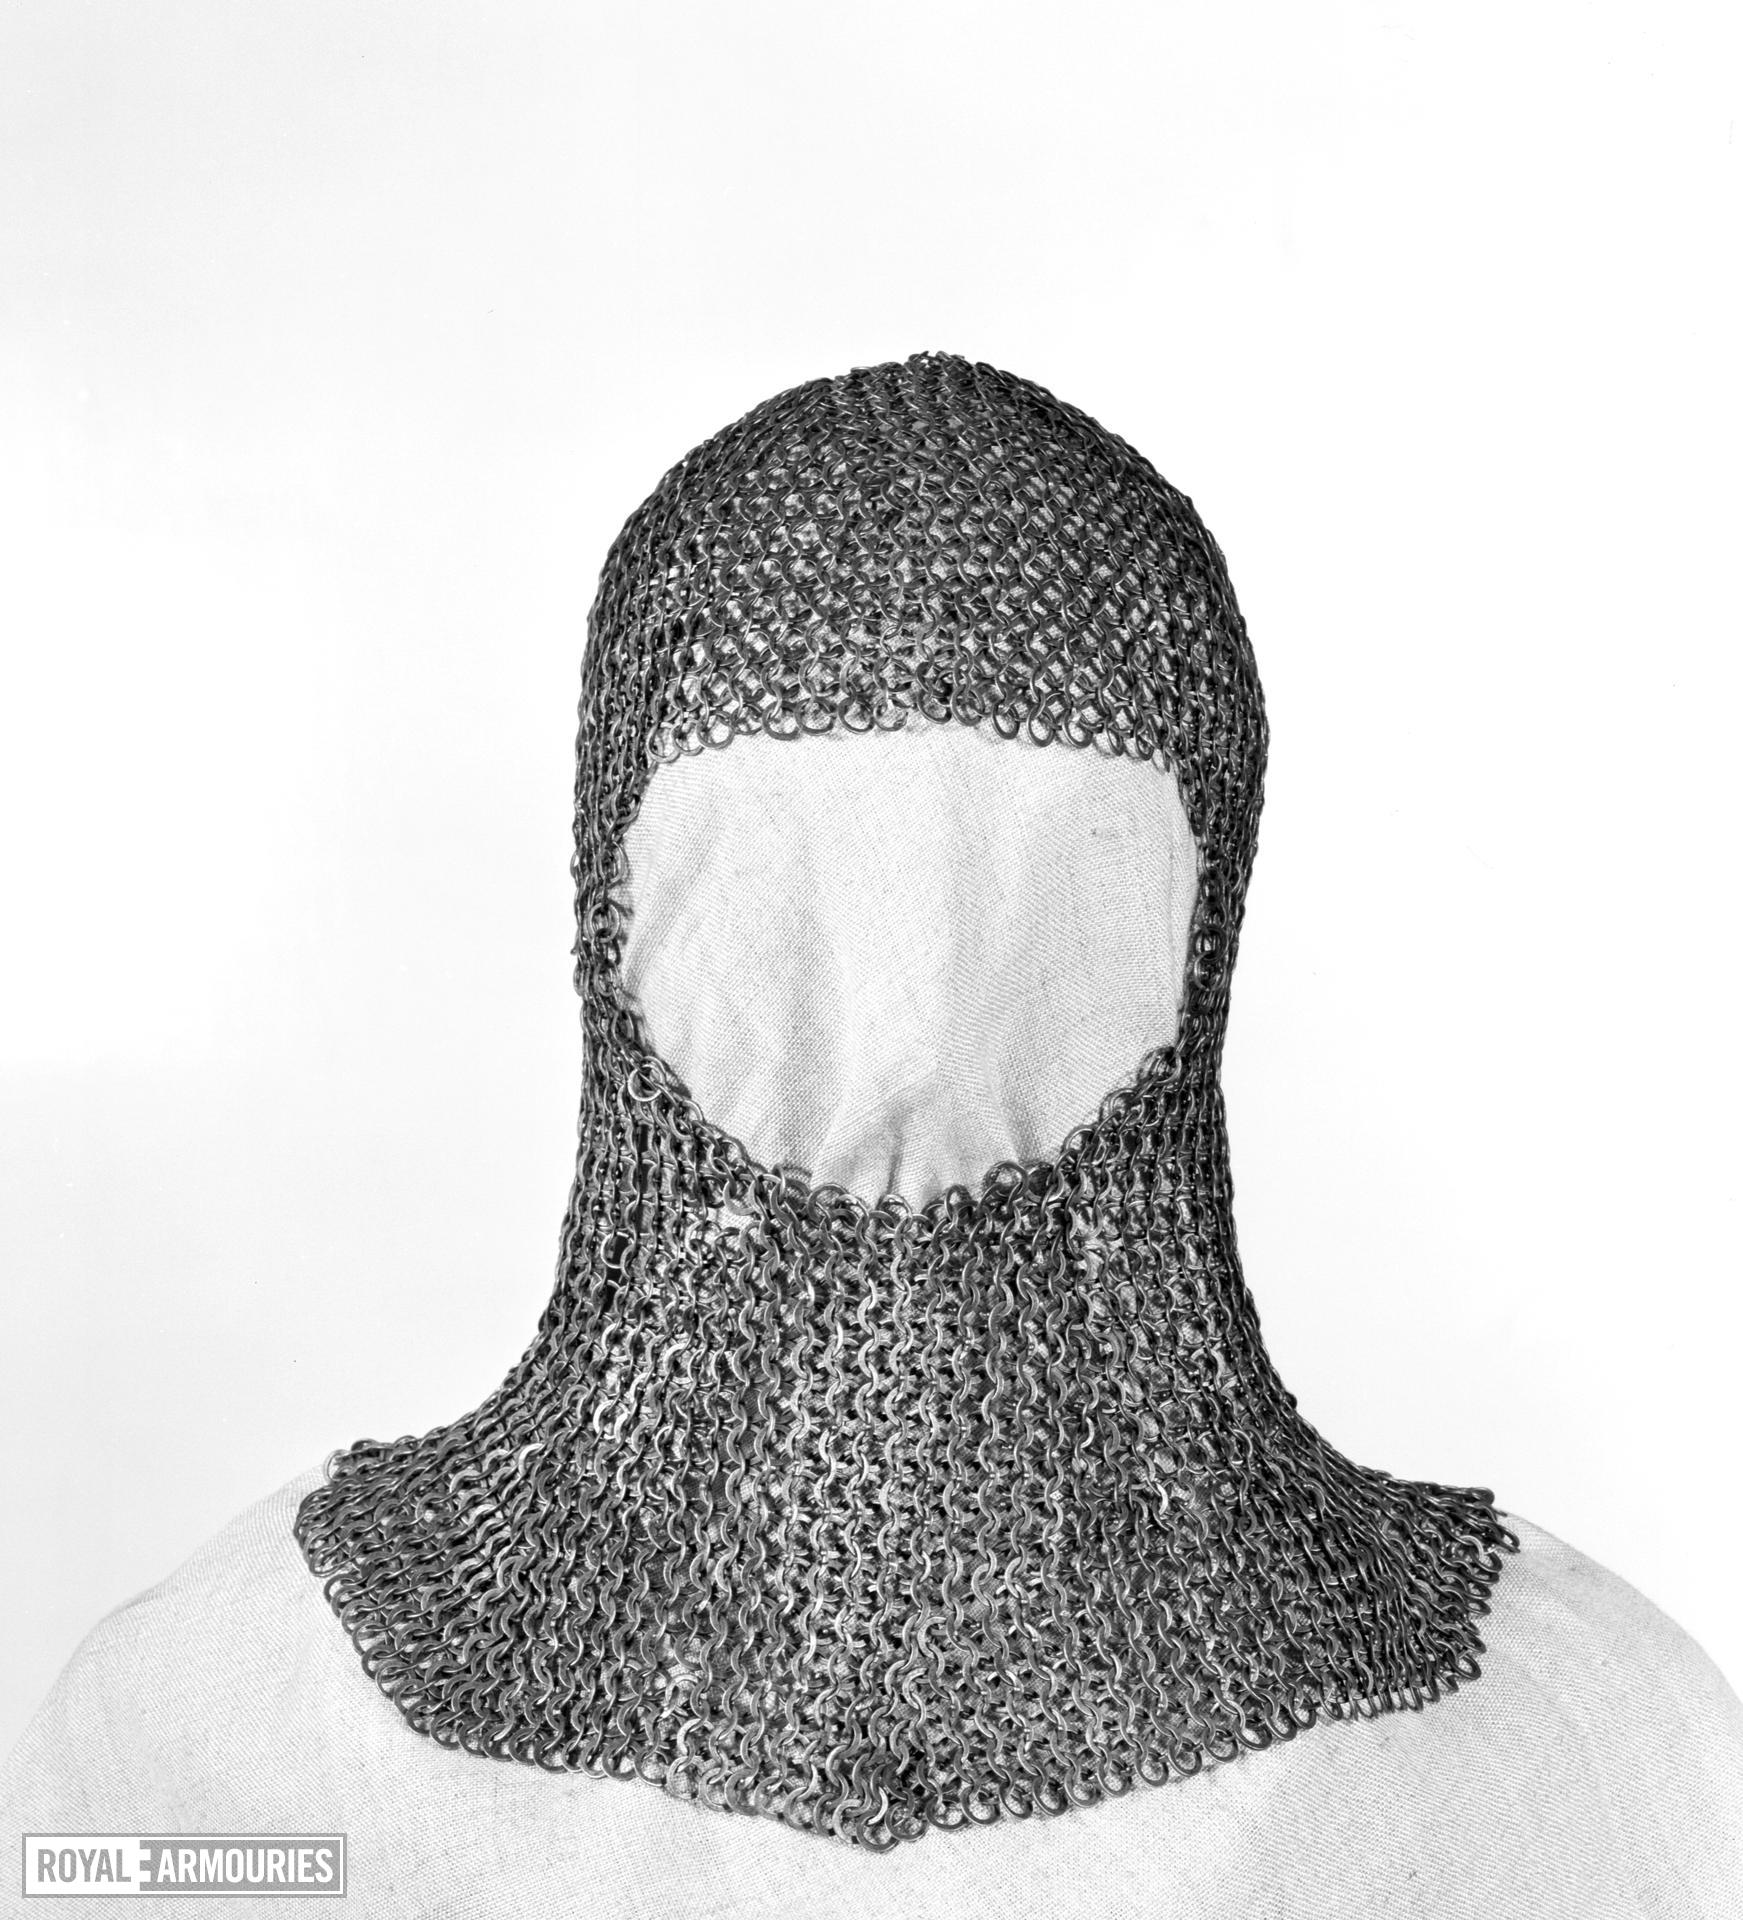 Mail coif. European, mid-14th century (III.28)